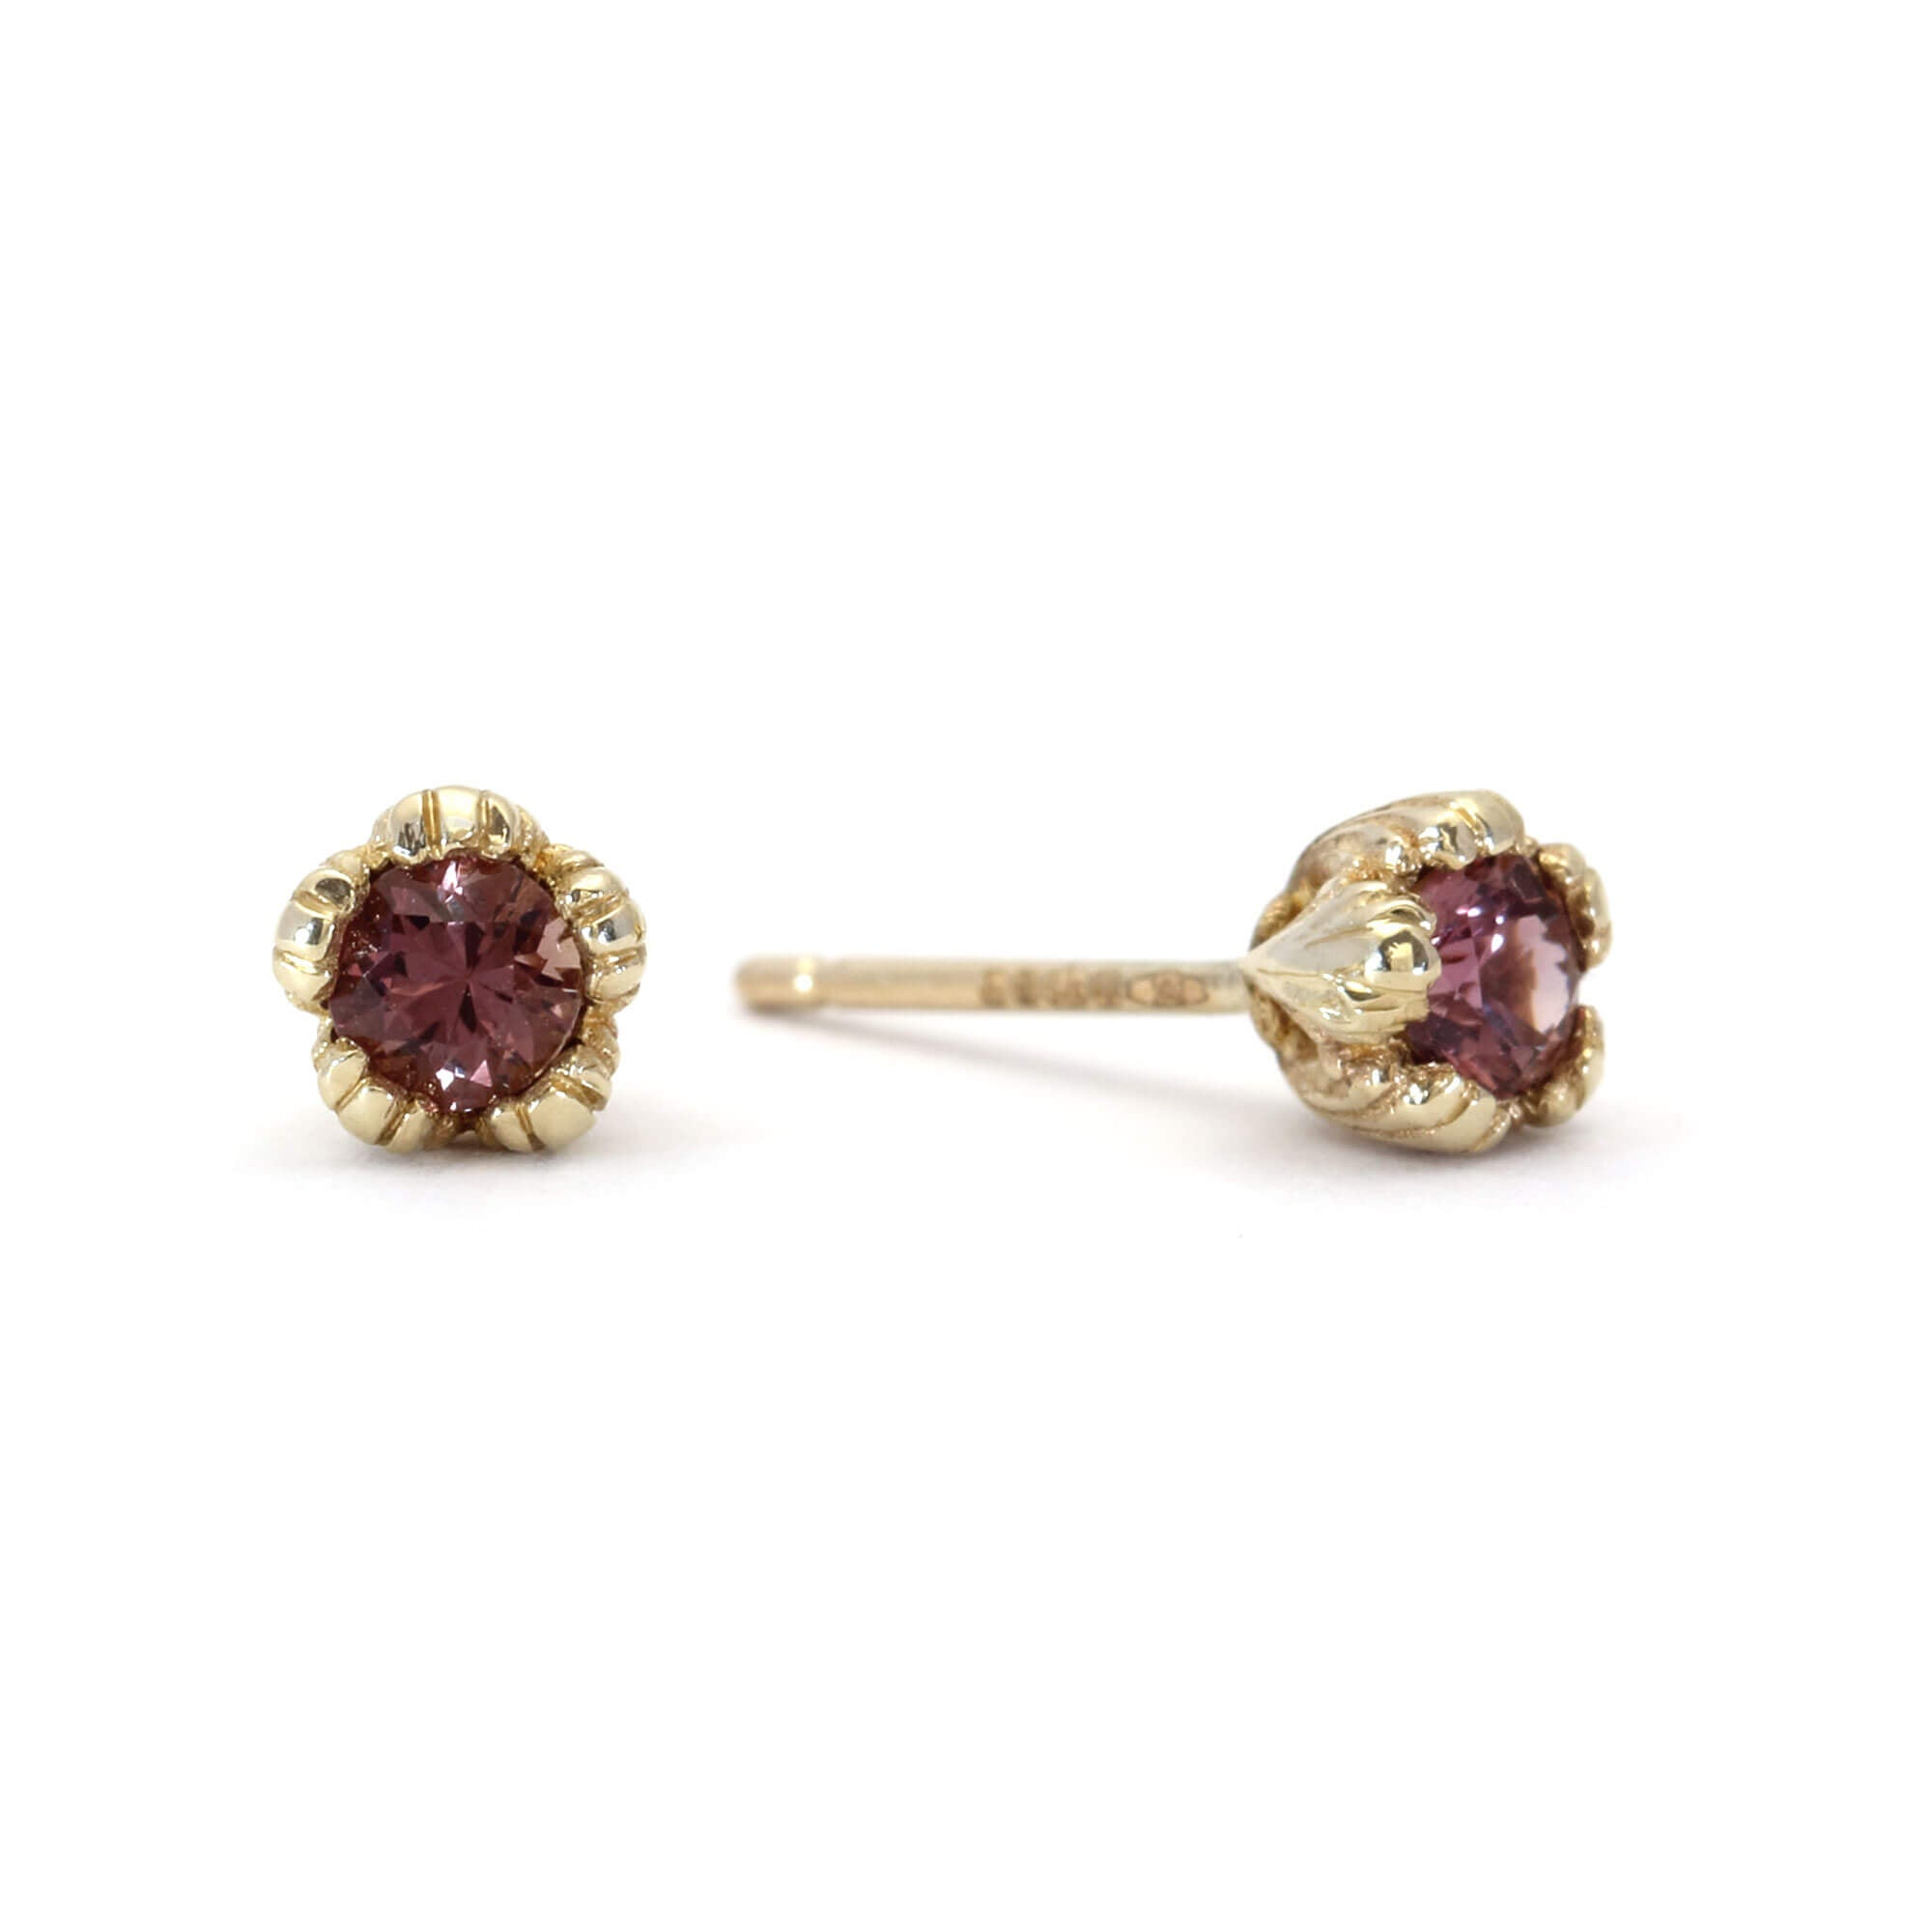 jewellery earrings yellow gold sapphire rosie pink stud collections and silver villa asymmetric kent